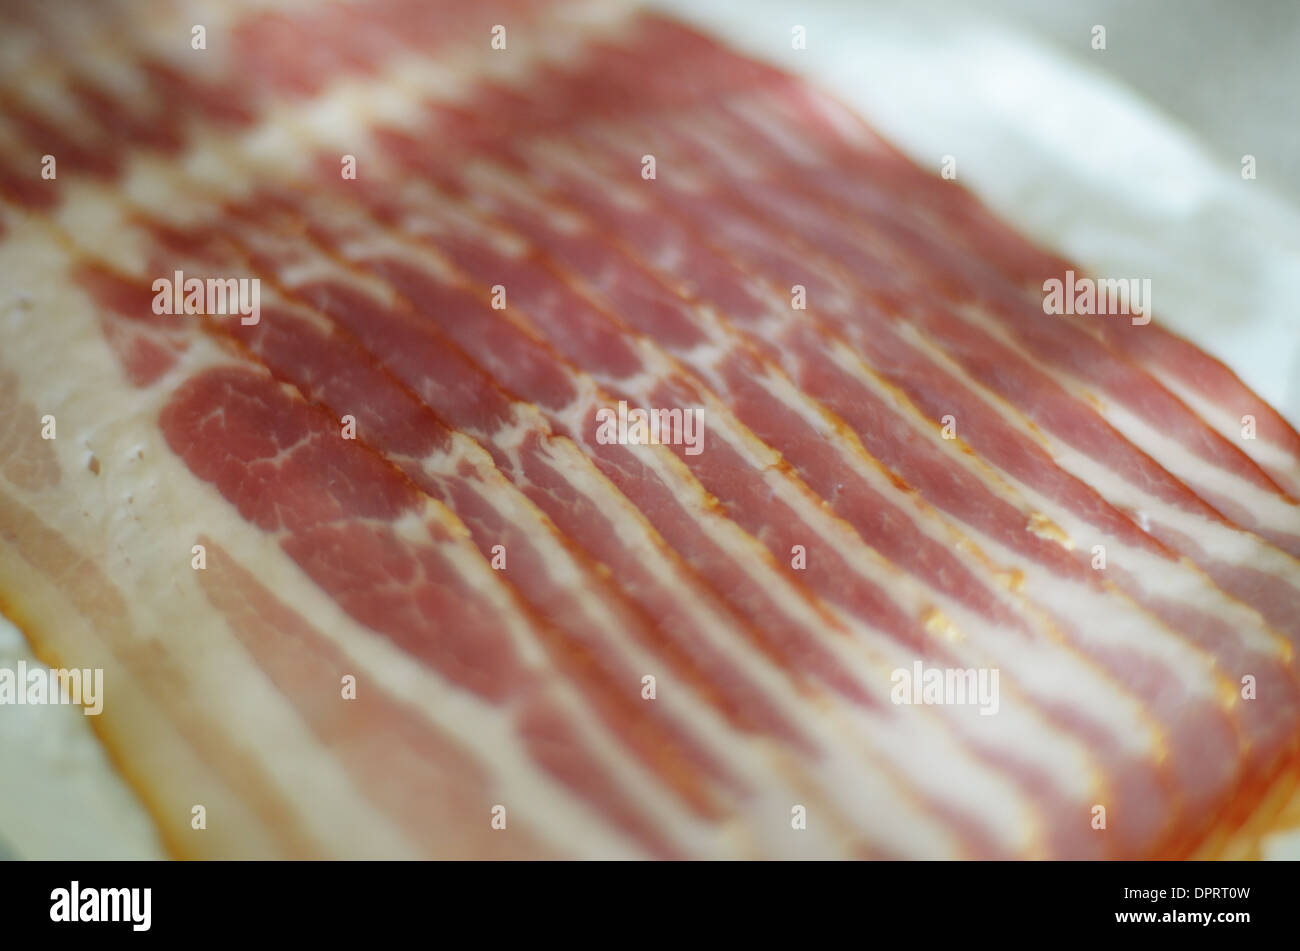 Bacon slices arranged on the table ready for catering - Stock Image